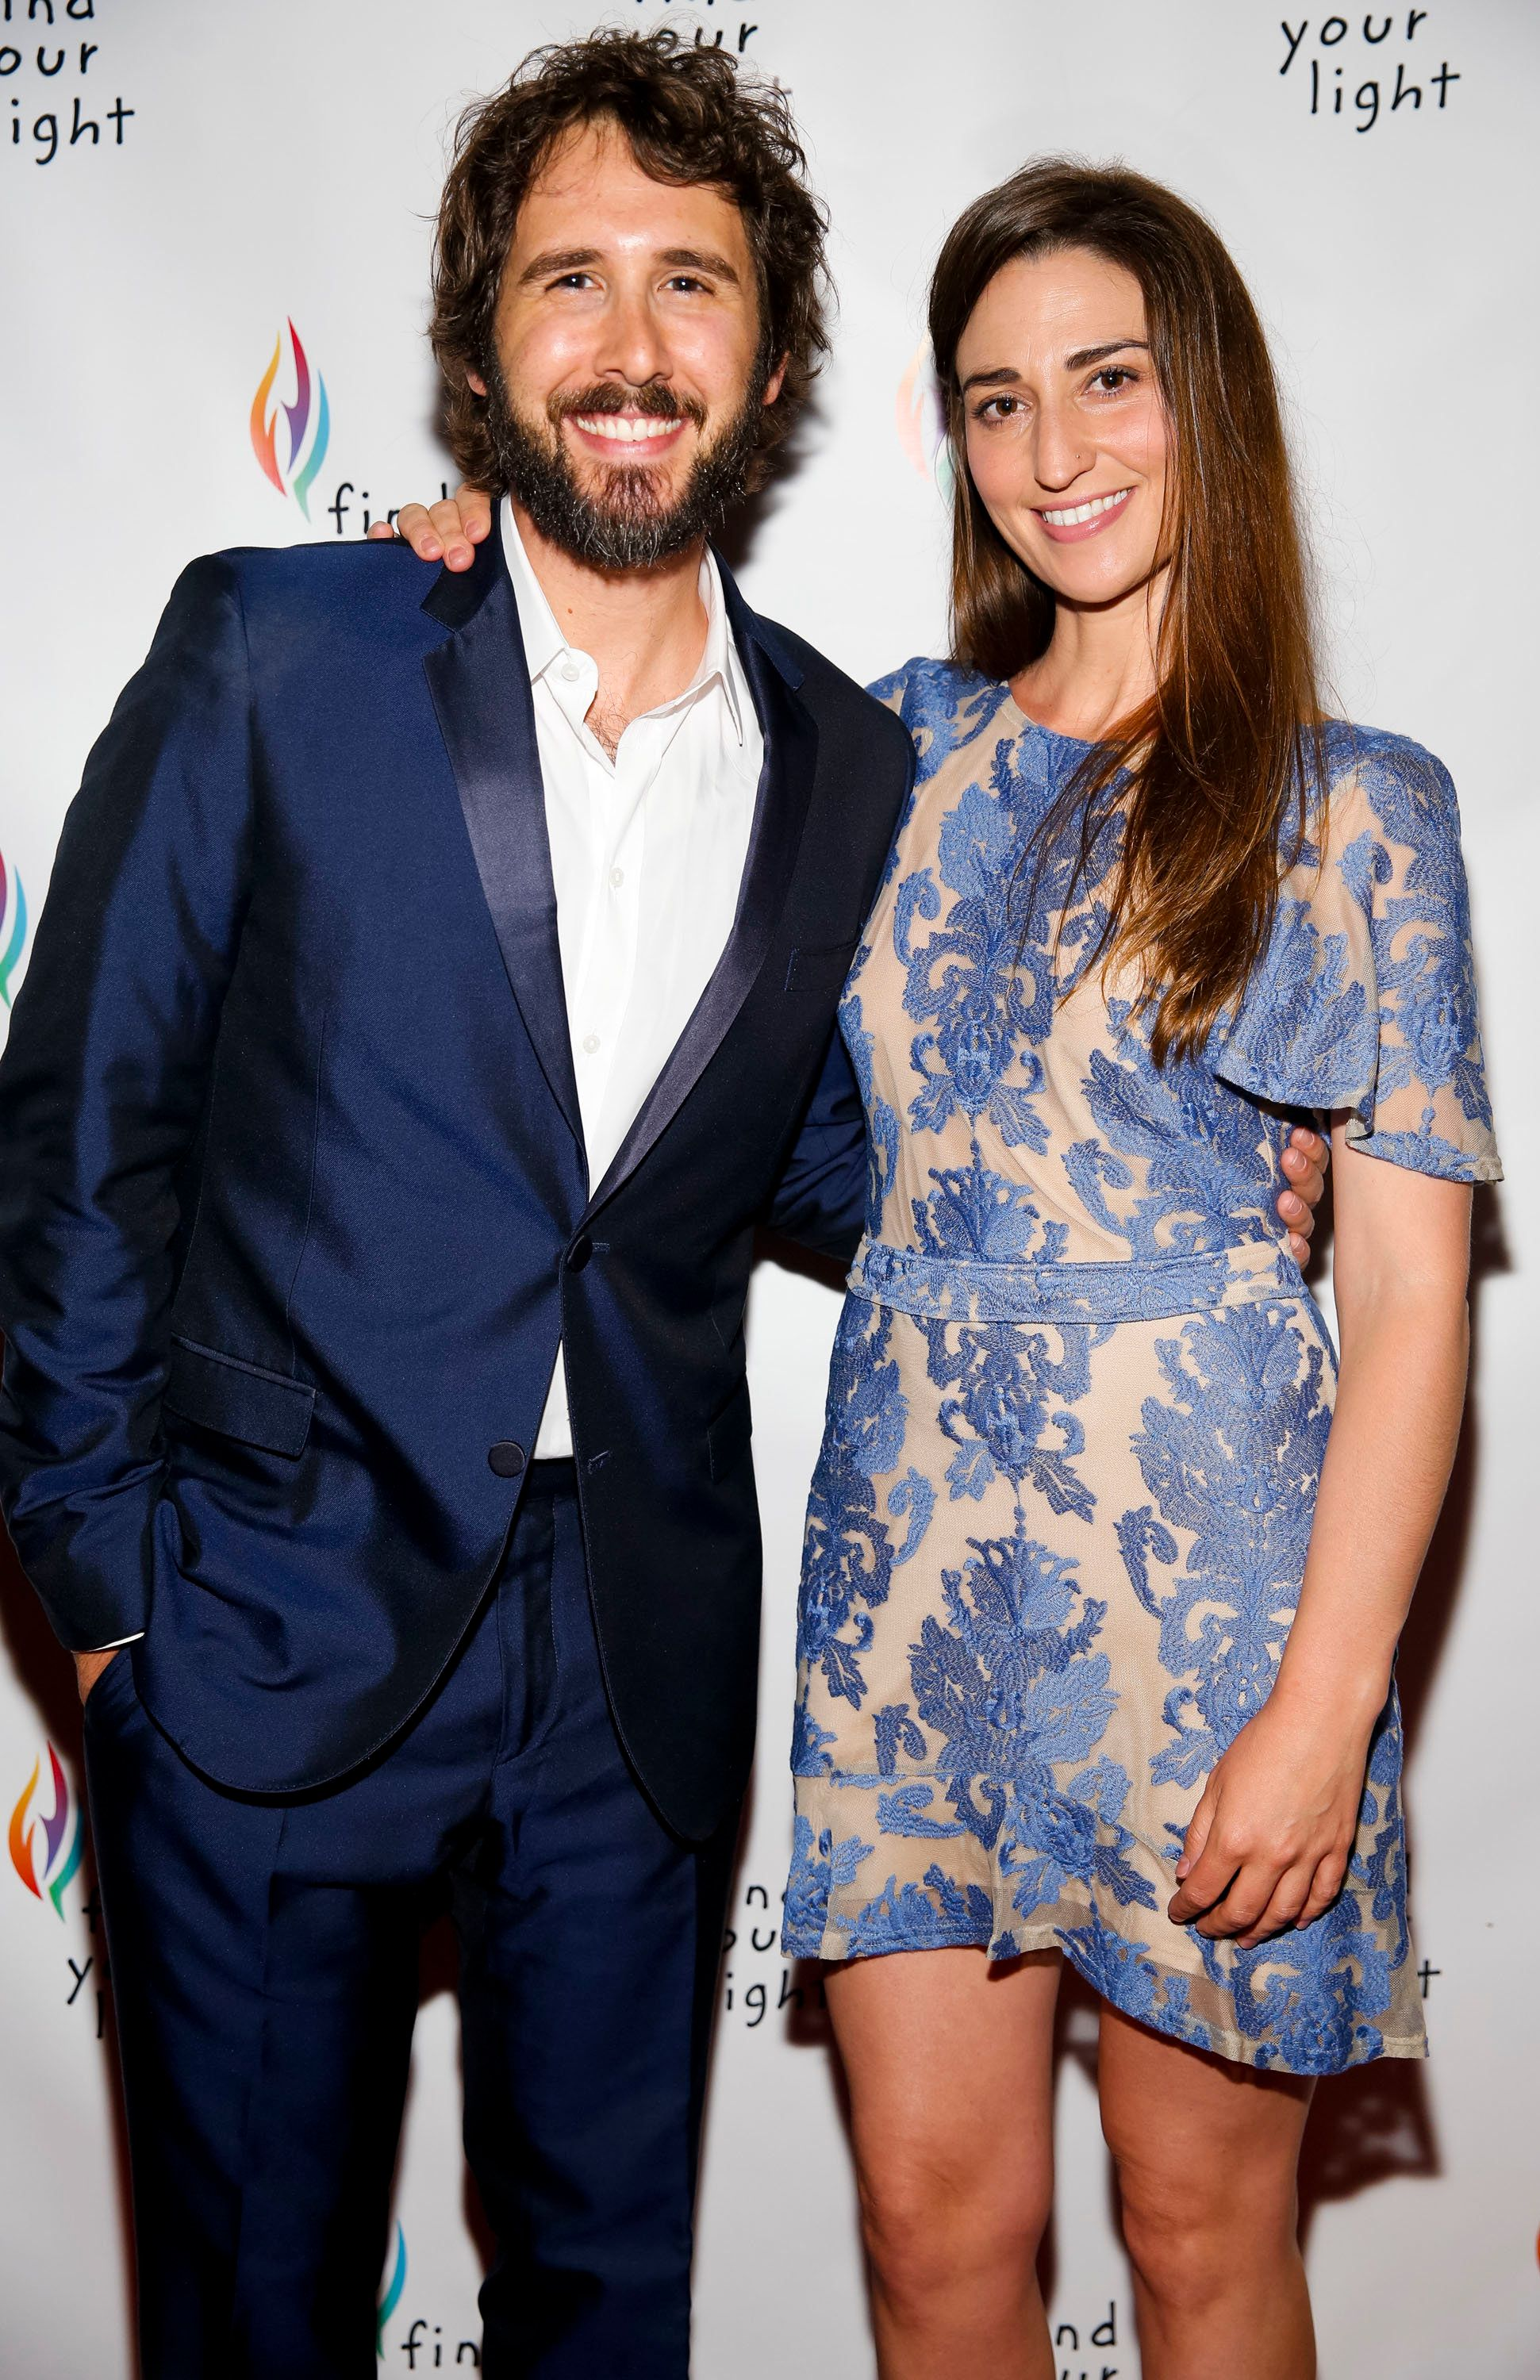 NEW YORK, NY - JUNE 06: Singer Josh Groban and singer/songwriter Sara Bareilles are seen during the Find Your Light Foundation Gala hosted by Josh Groban at City Winery on June 6, 2016 in New York City.  (Photo by Brian Ach/Getty Images for Find Your Light Foundation)